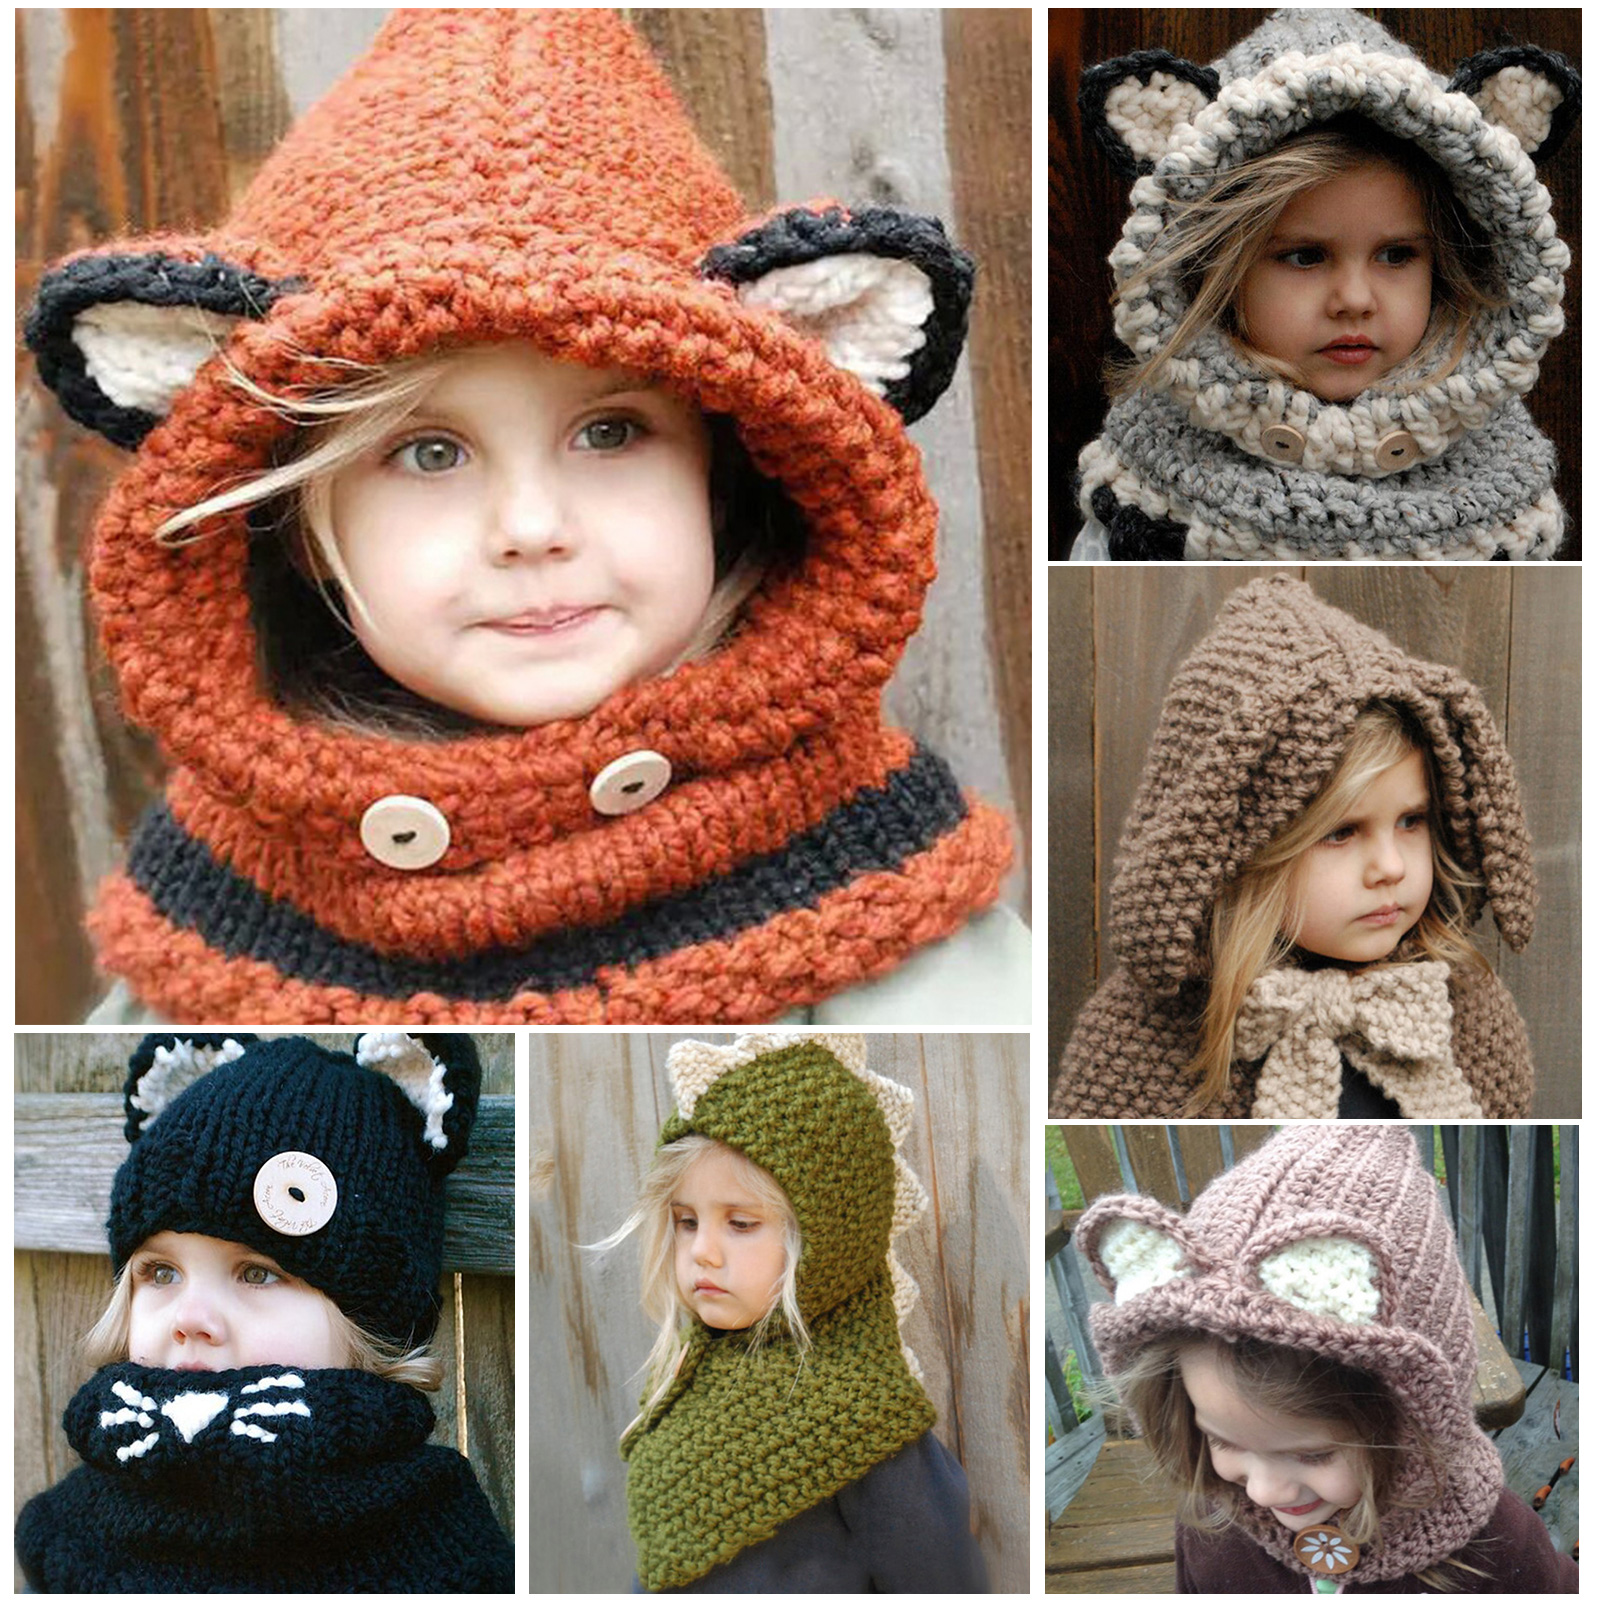 d57564d424e Details about Cute Baby Girl Boy Warm Winter Hat Cap Hood Scarf Toddler Baby  Kids Knitting Hat